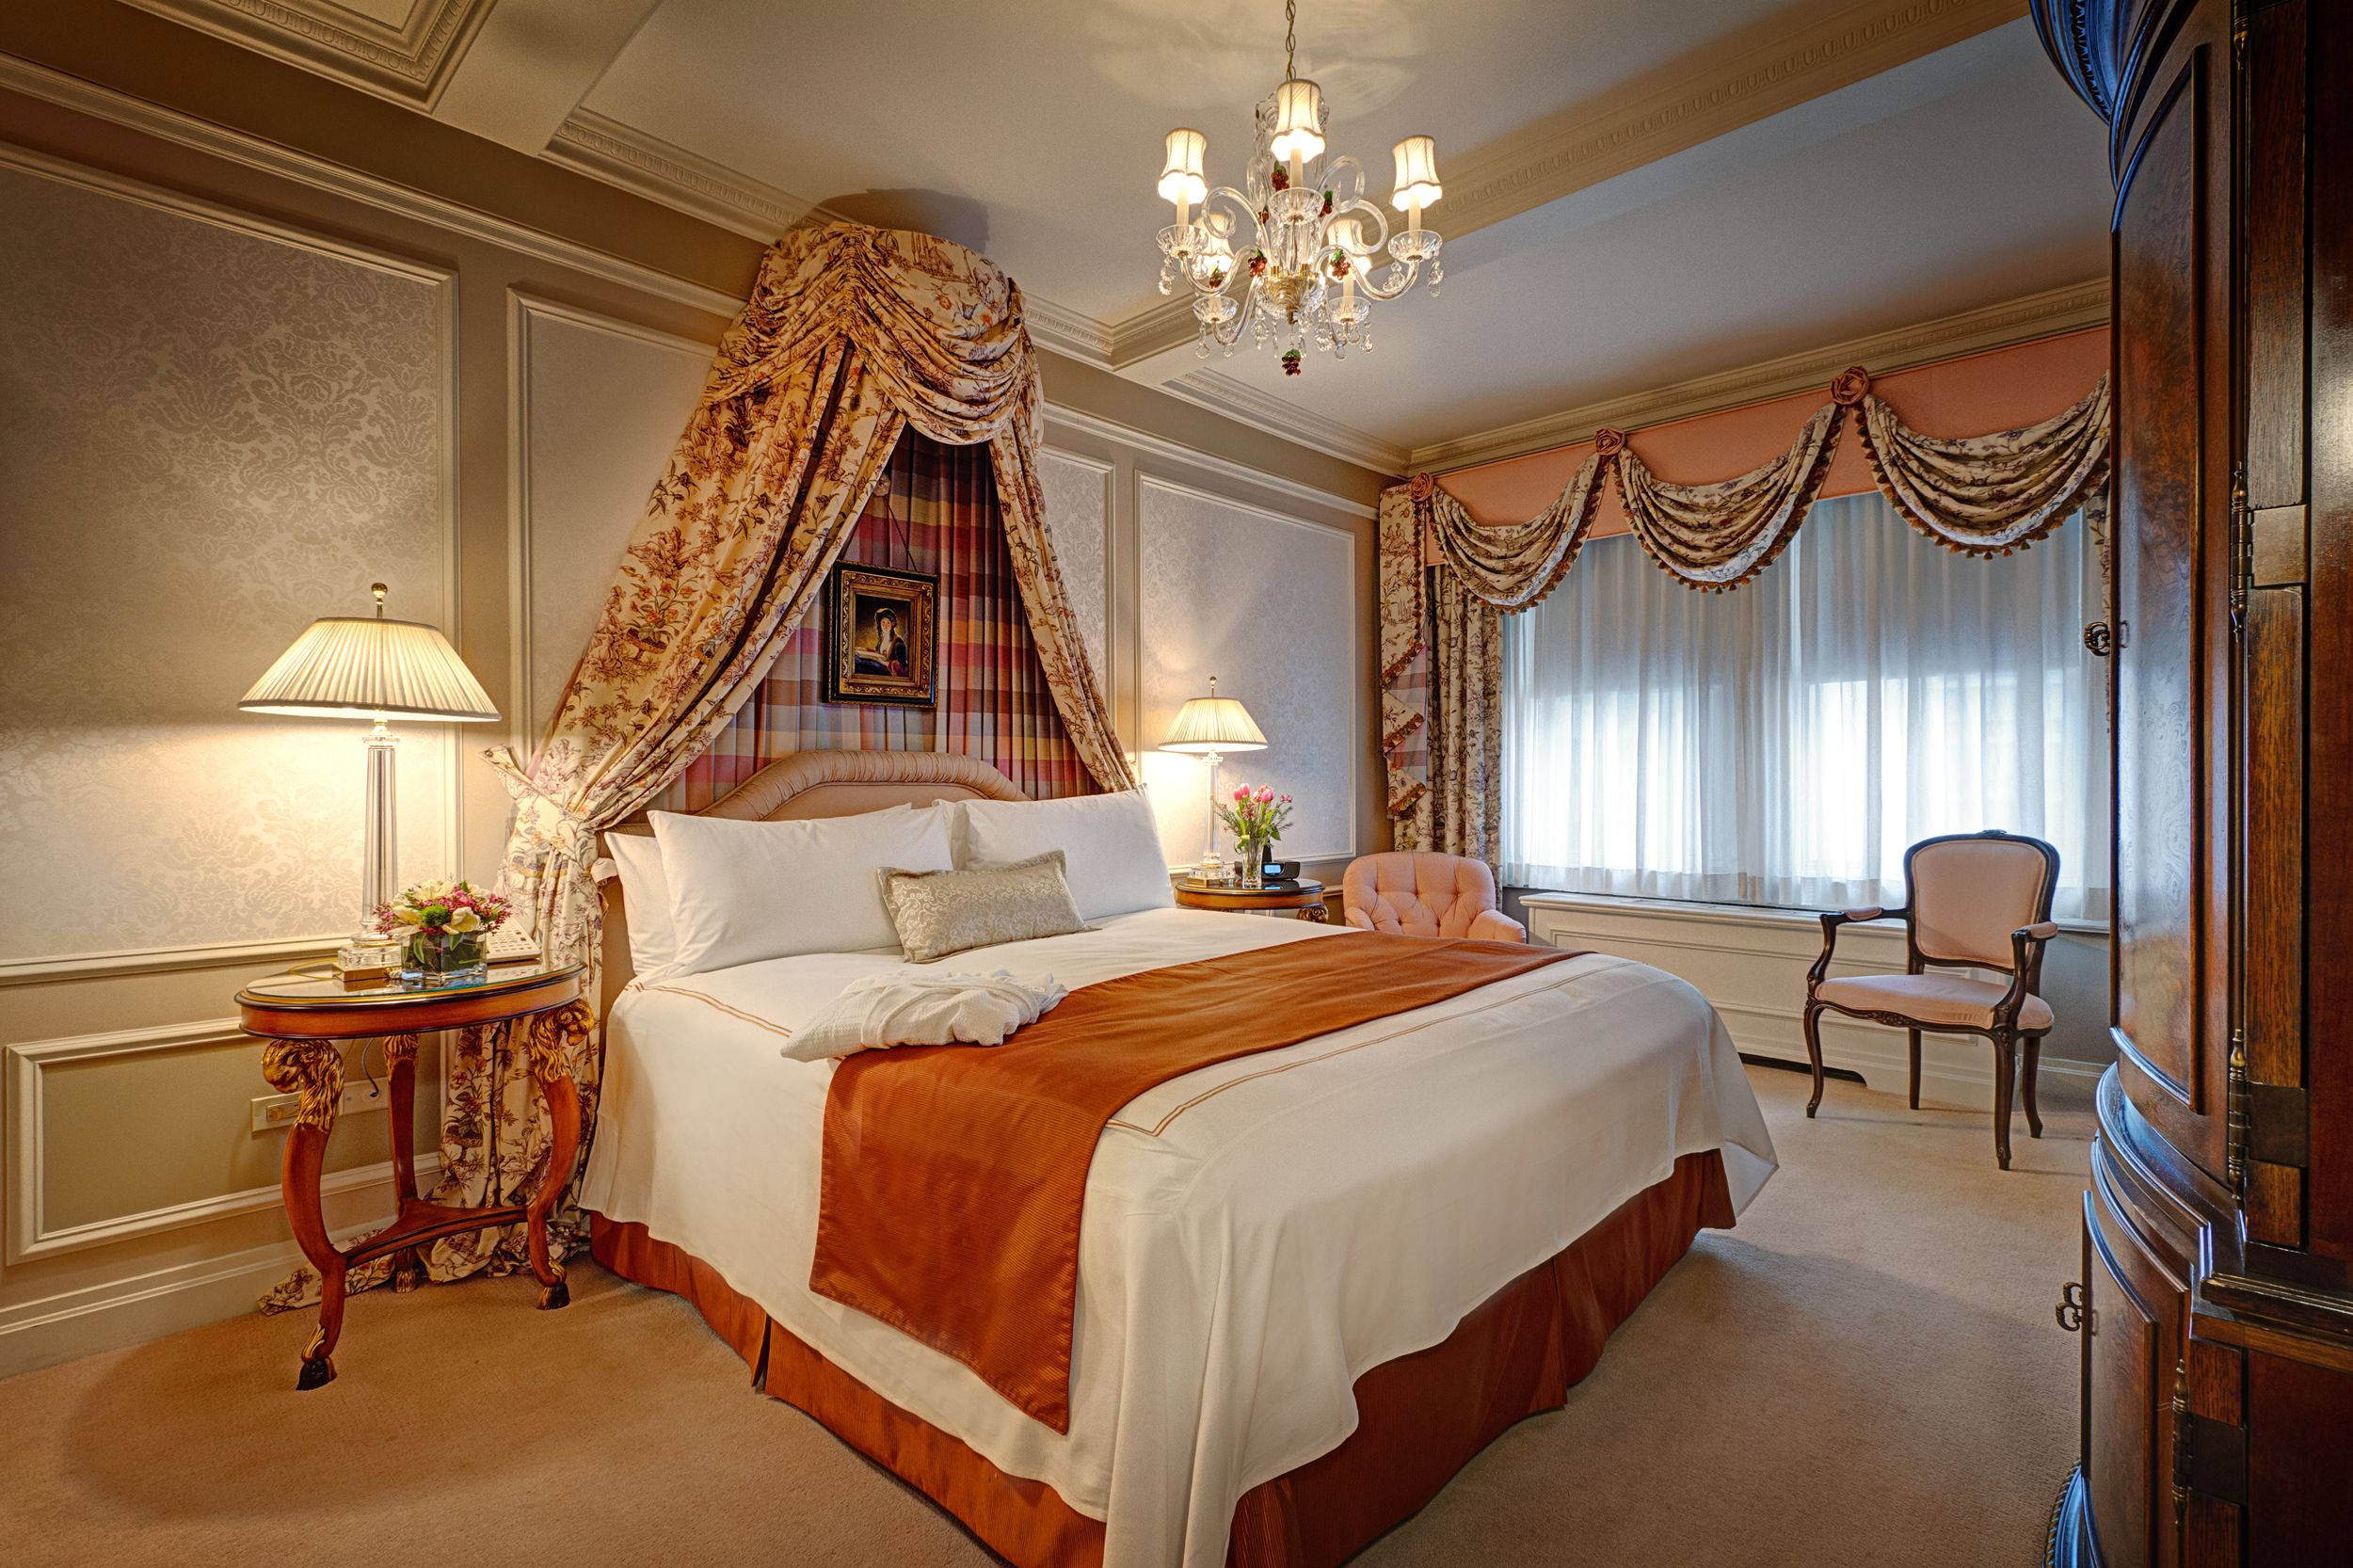 HotelElysee Premium Suite. Best boutique hotels, Hotel